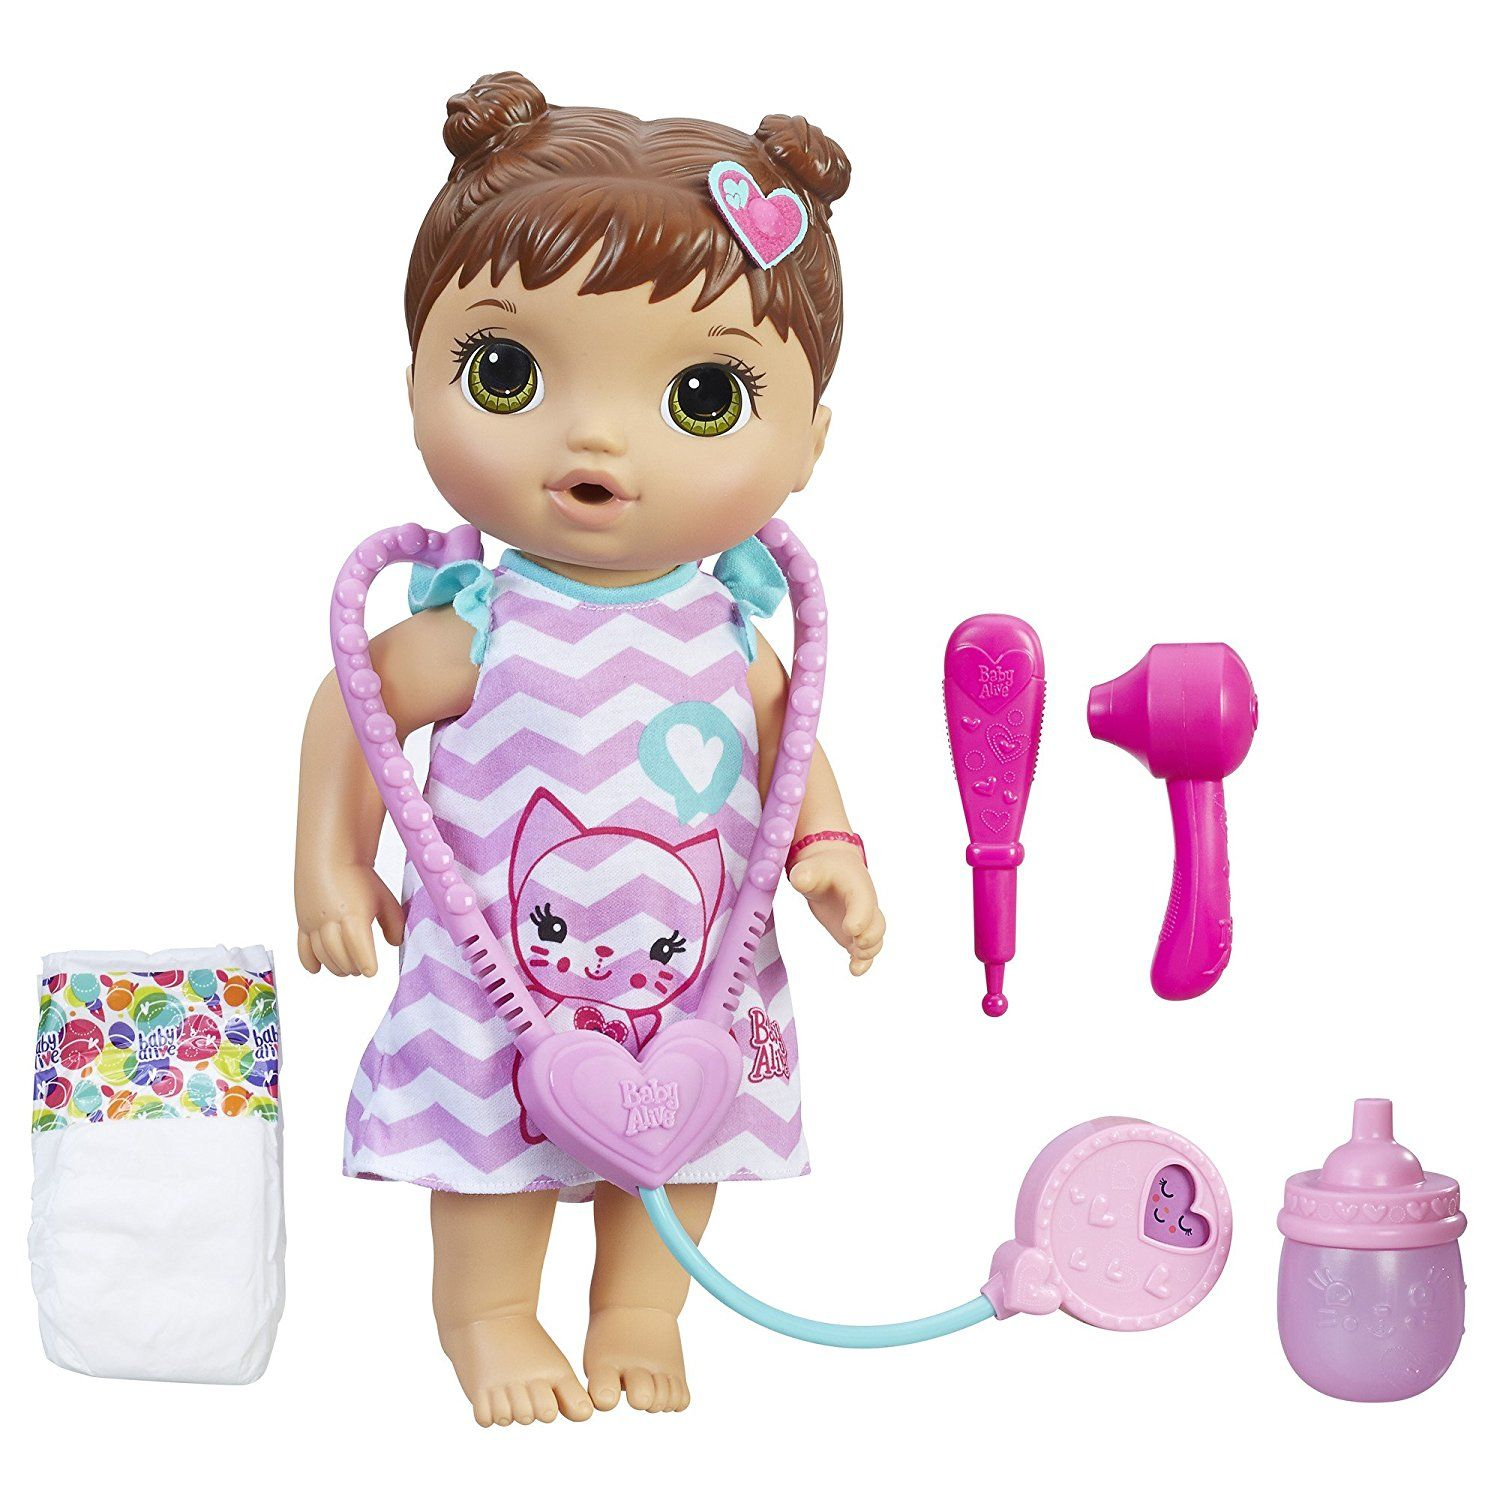 Amazon Com Baby Alive Better Now Bailey Brunette Toys Amp Games Realistic Baby Dolls Baby Doll Accessories Baby Alive Dolls